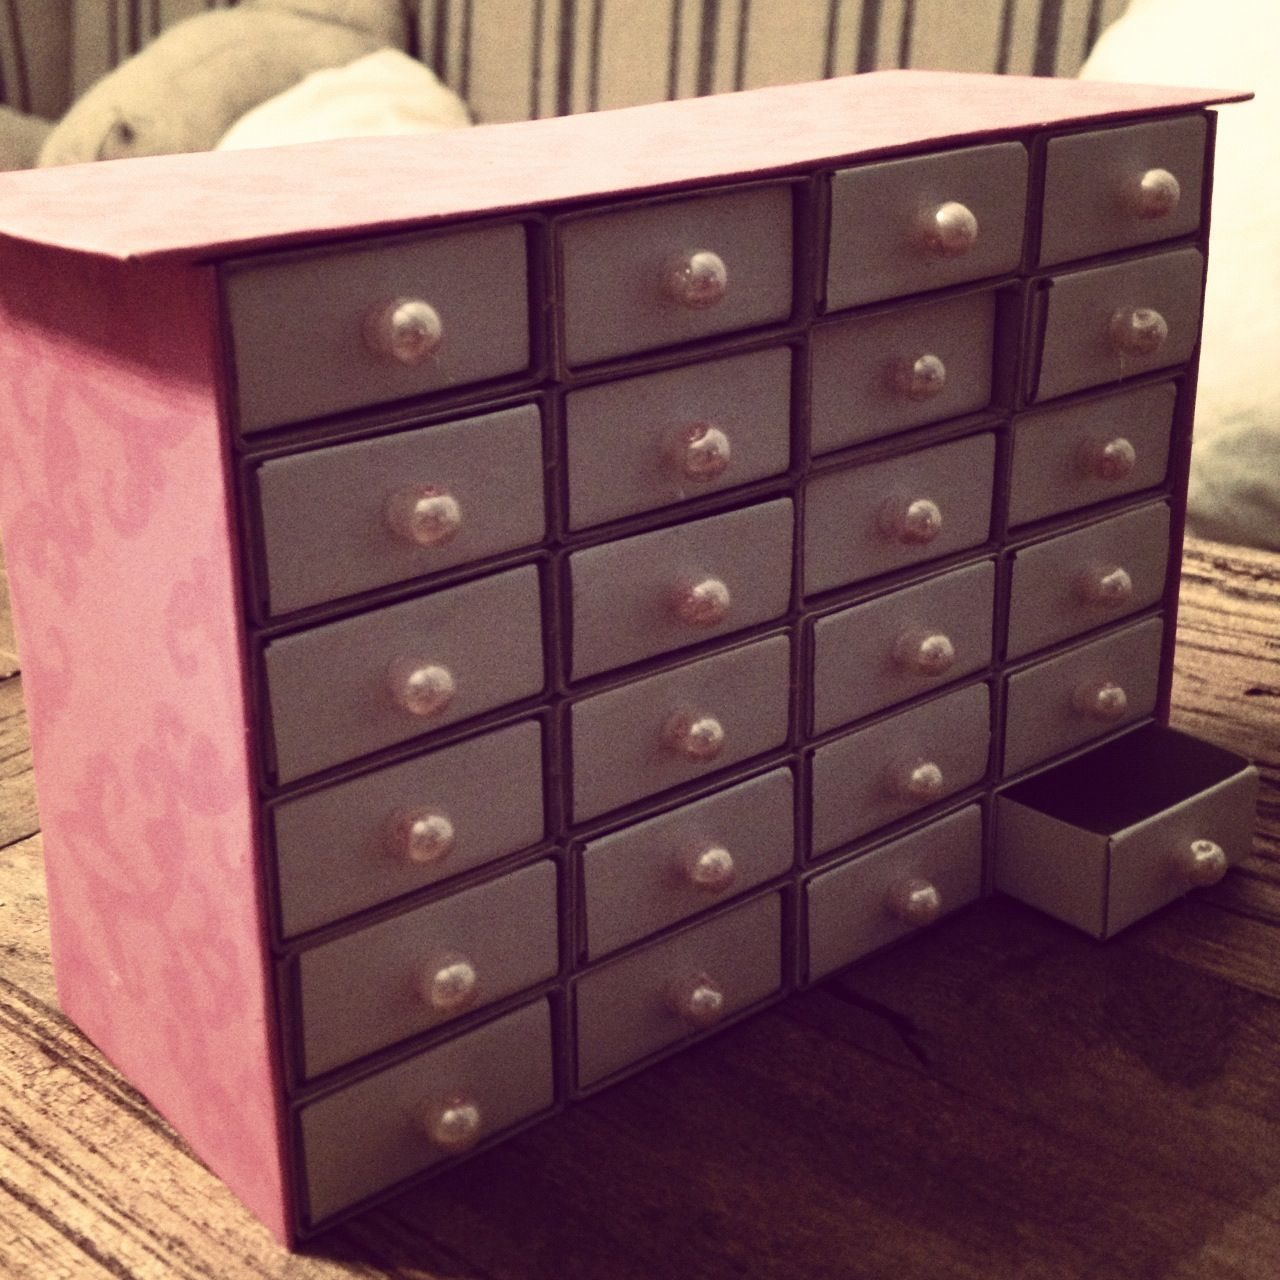 Charming DIY Barbie Shoe Storage Pinner Stated Using Matchboxes, Glue, Beads, Pretty  Paper And